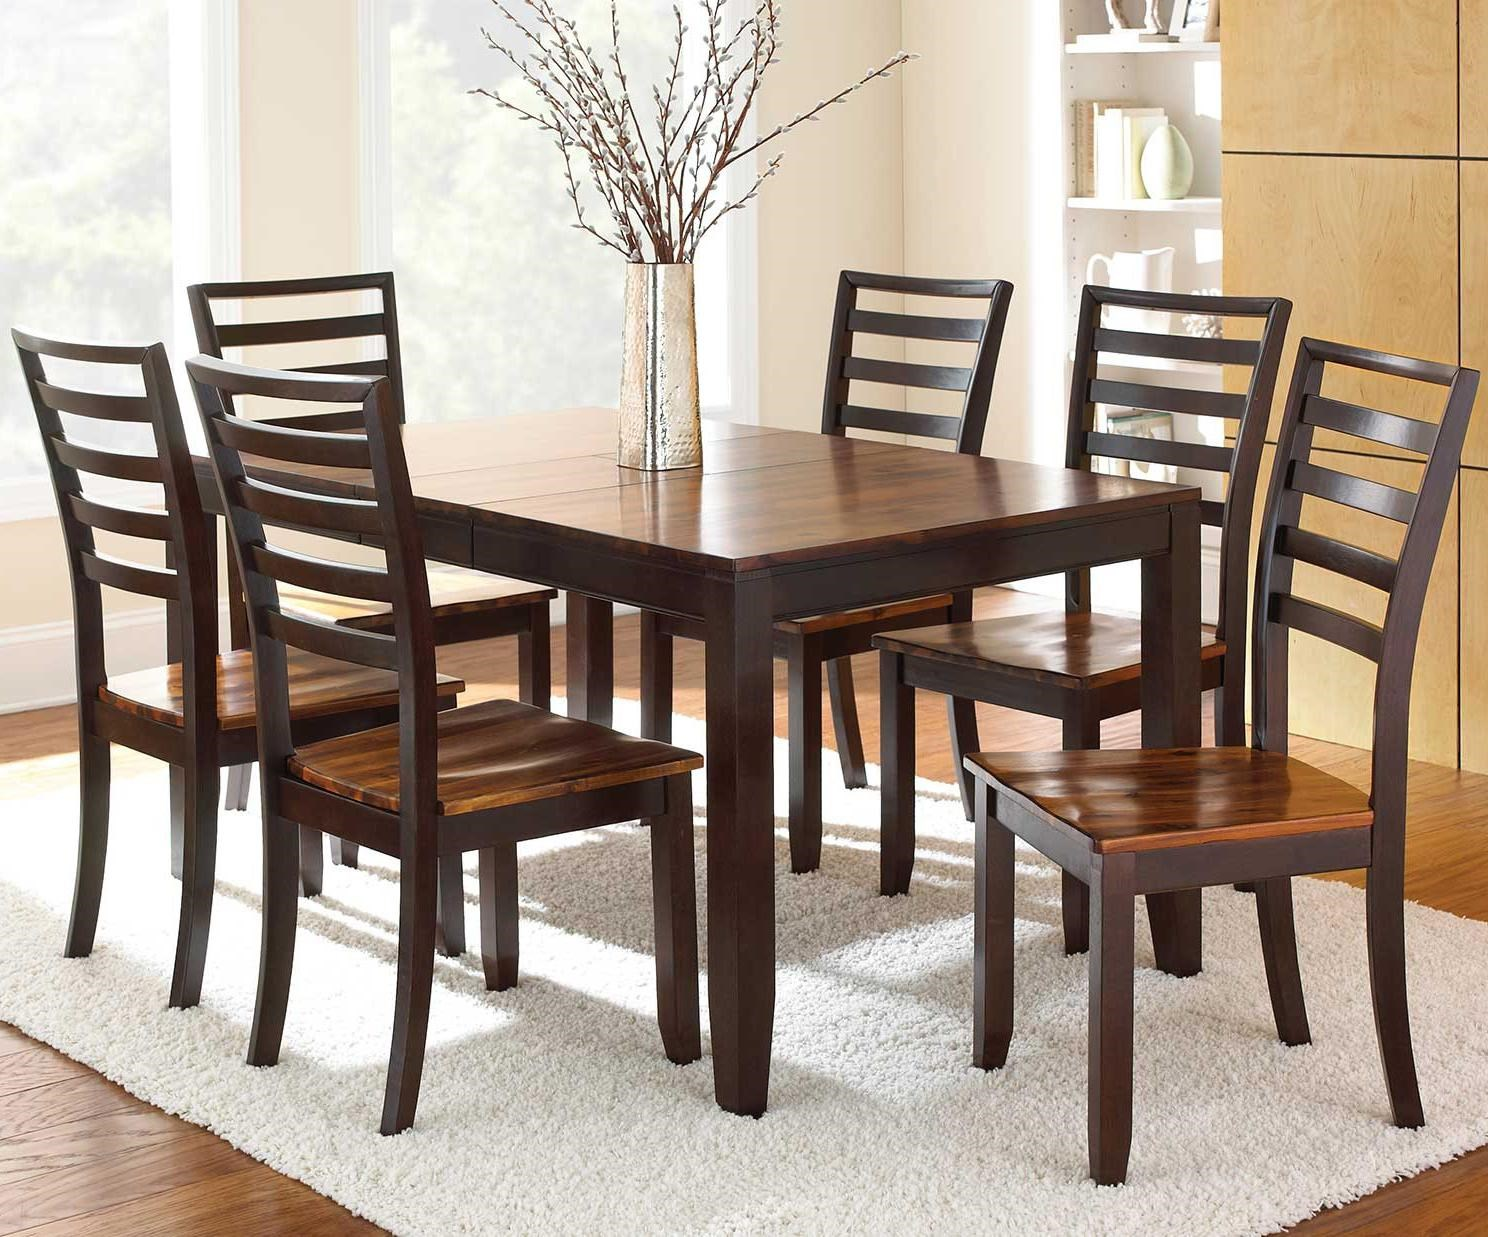 7-Piece Leg Table and Ladder Back Chairs